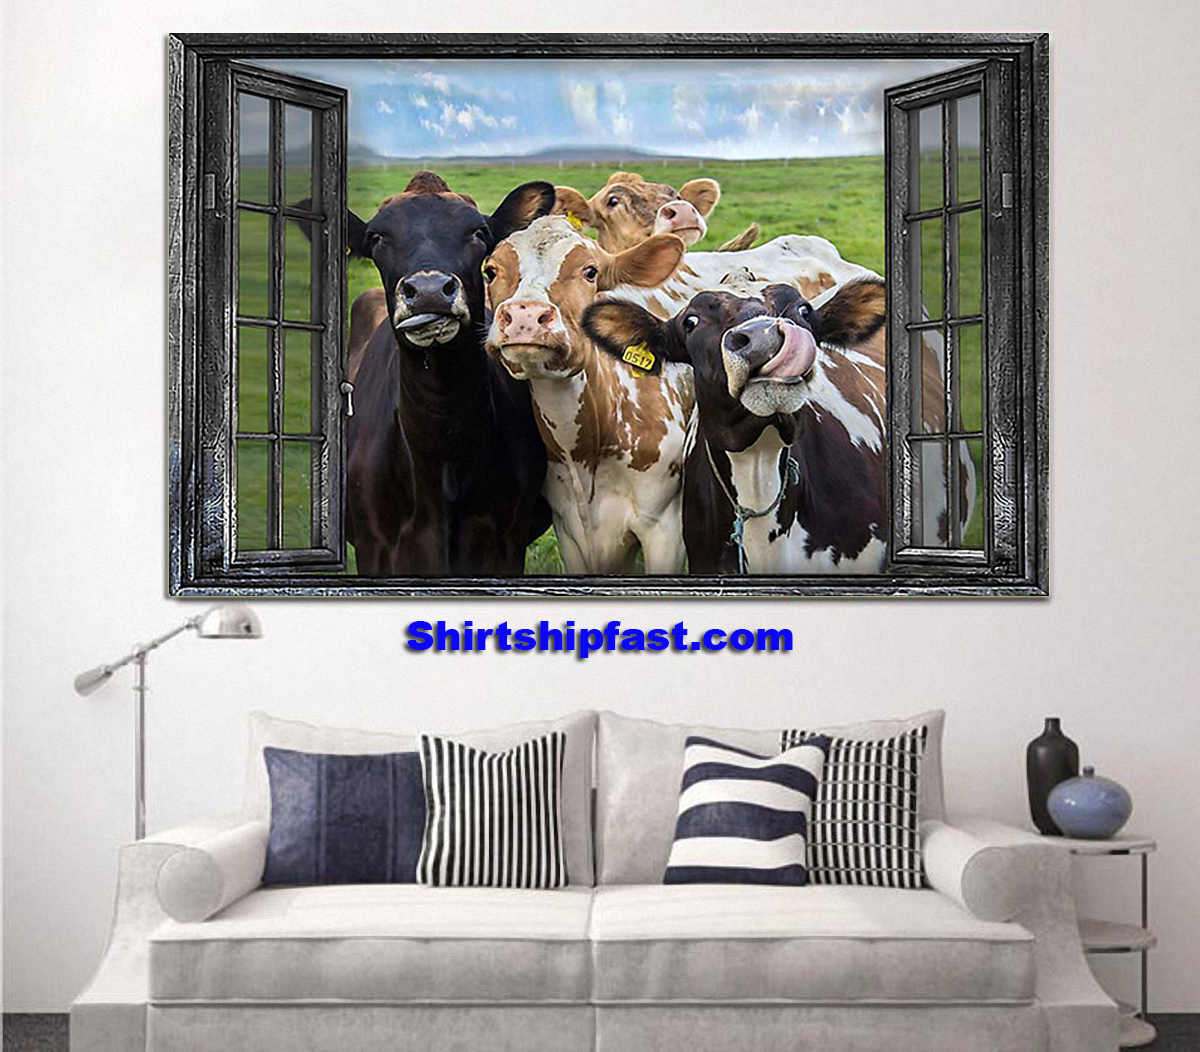 Cow window poster - Picture 1